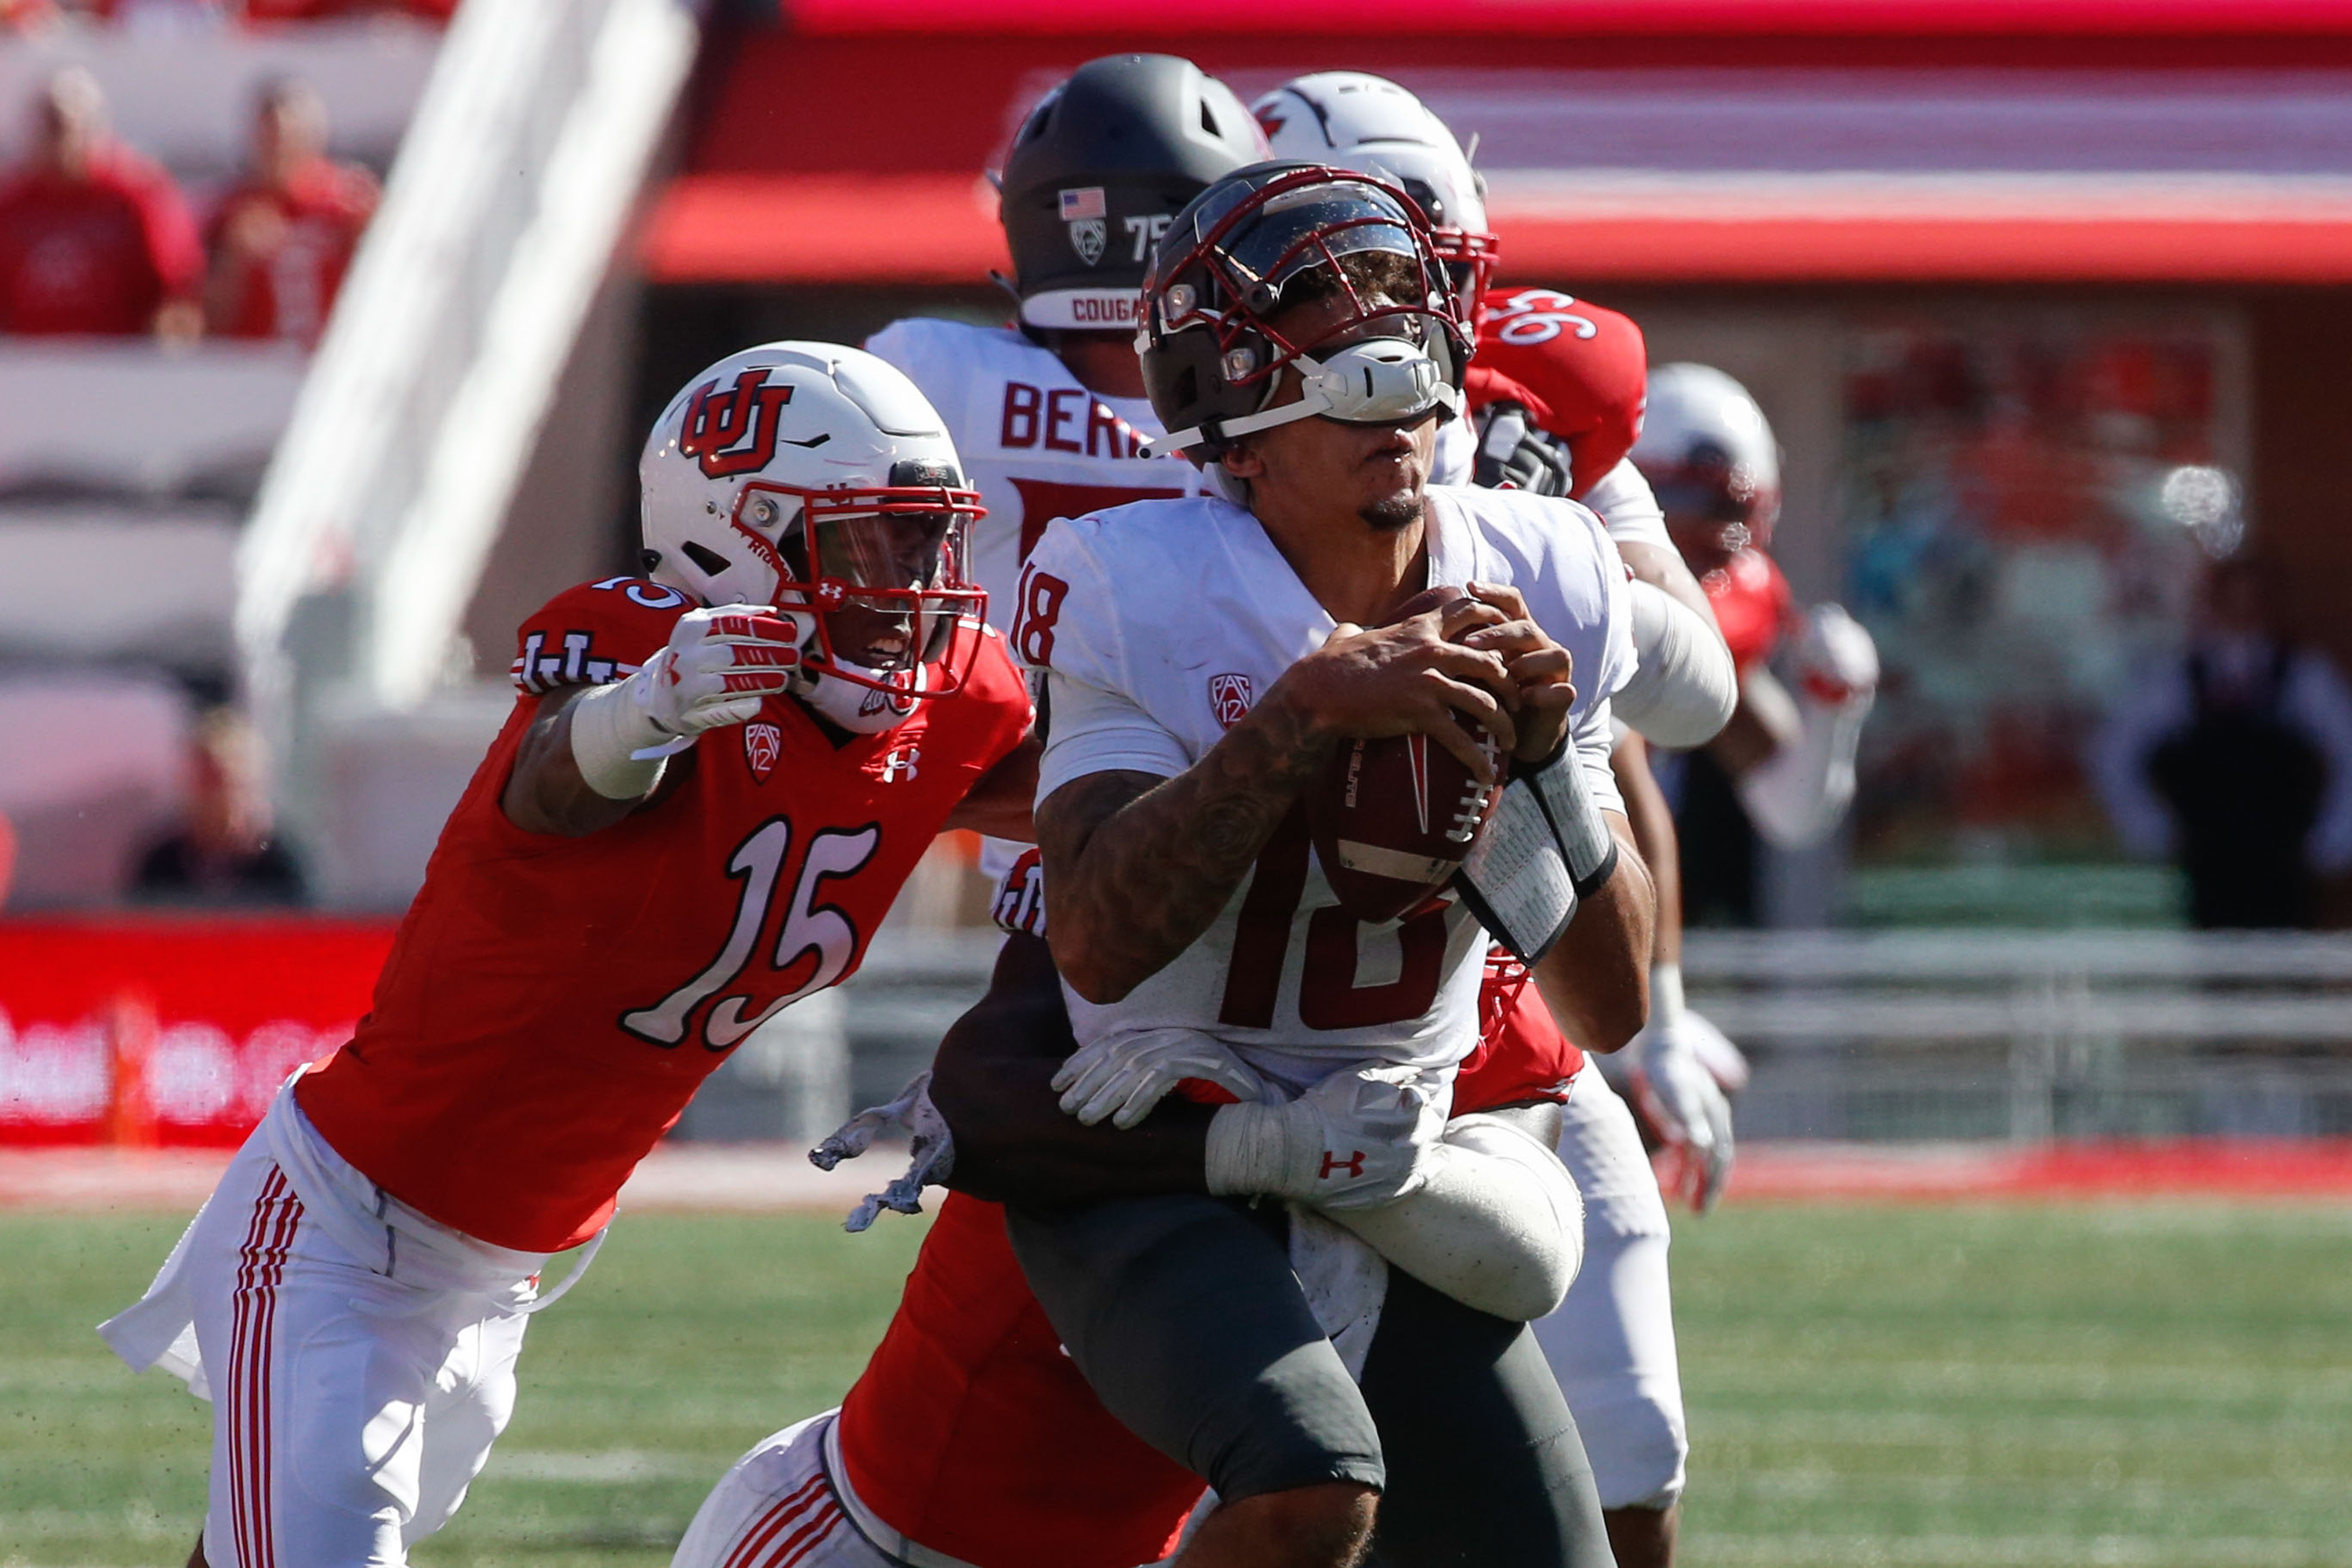 Washington State quarterback Jarrett Guarantano's (18) helmet comes off while he's tackled by Utah defenders during an NCAA college football game at Rice-Eccles Stadium on Saturday, Sept. 25, 2021 in Salt Lake City. Utah won the game 24-13.